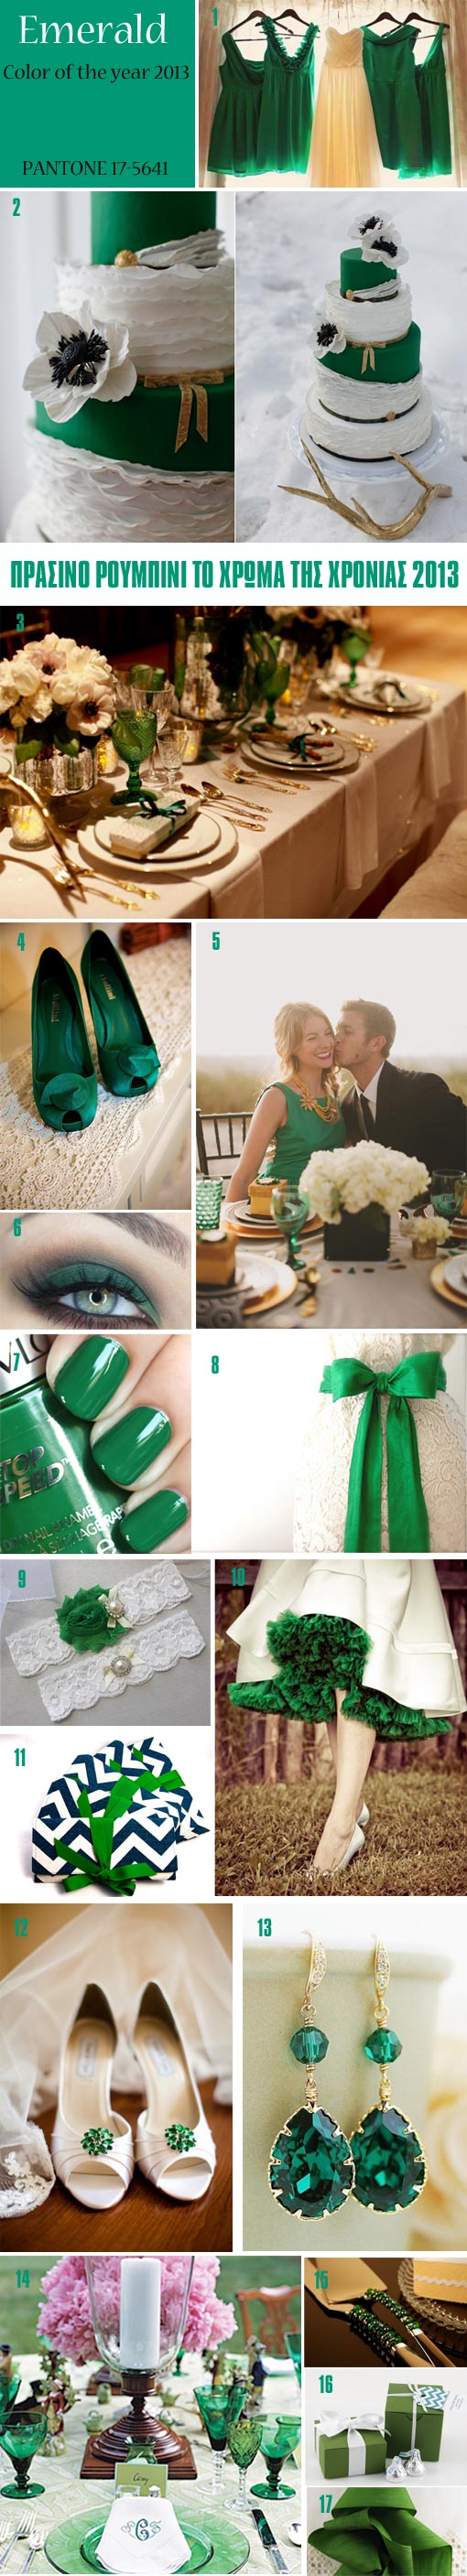 Emerald color of the year 2013 pantone